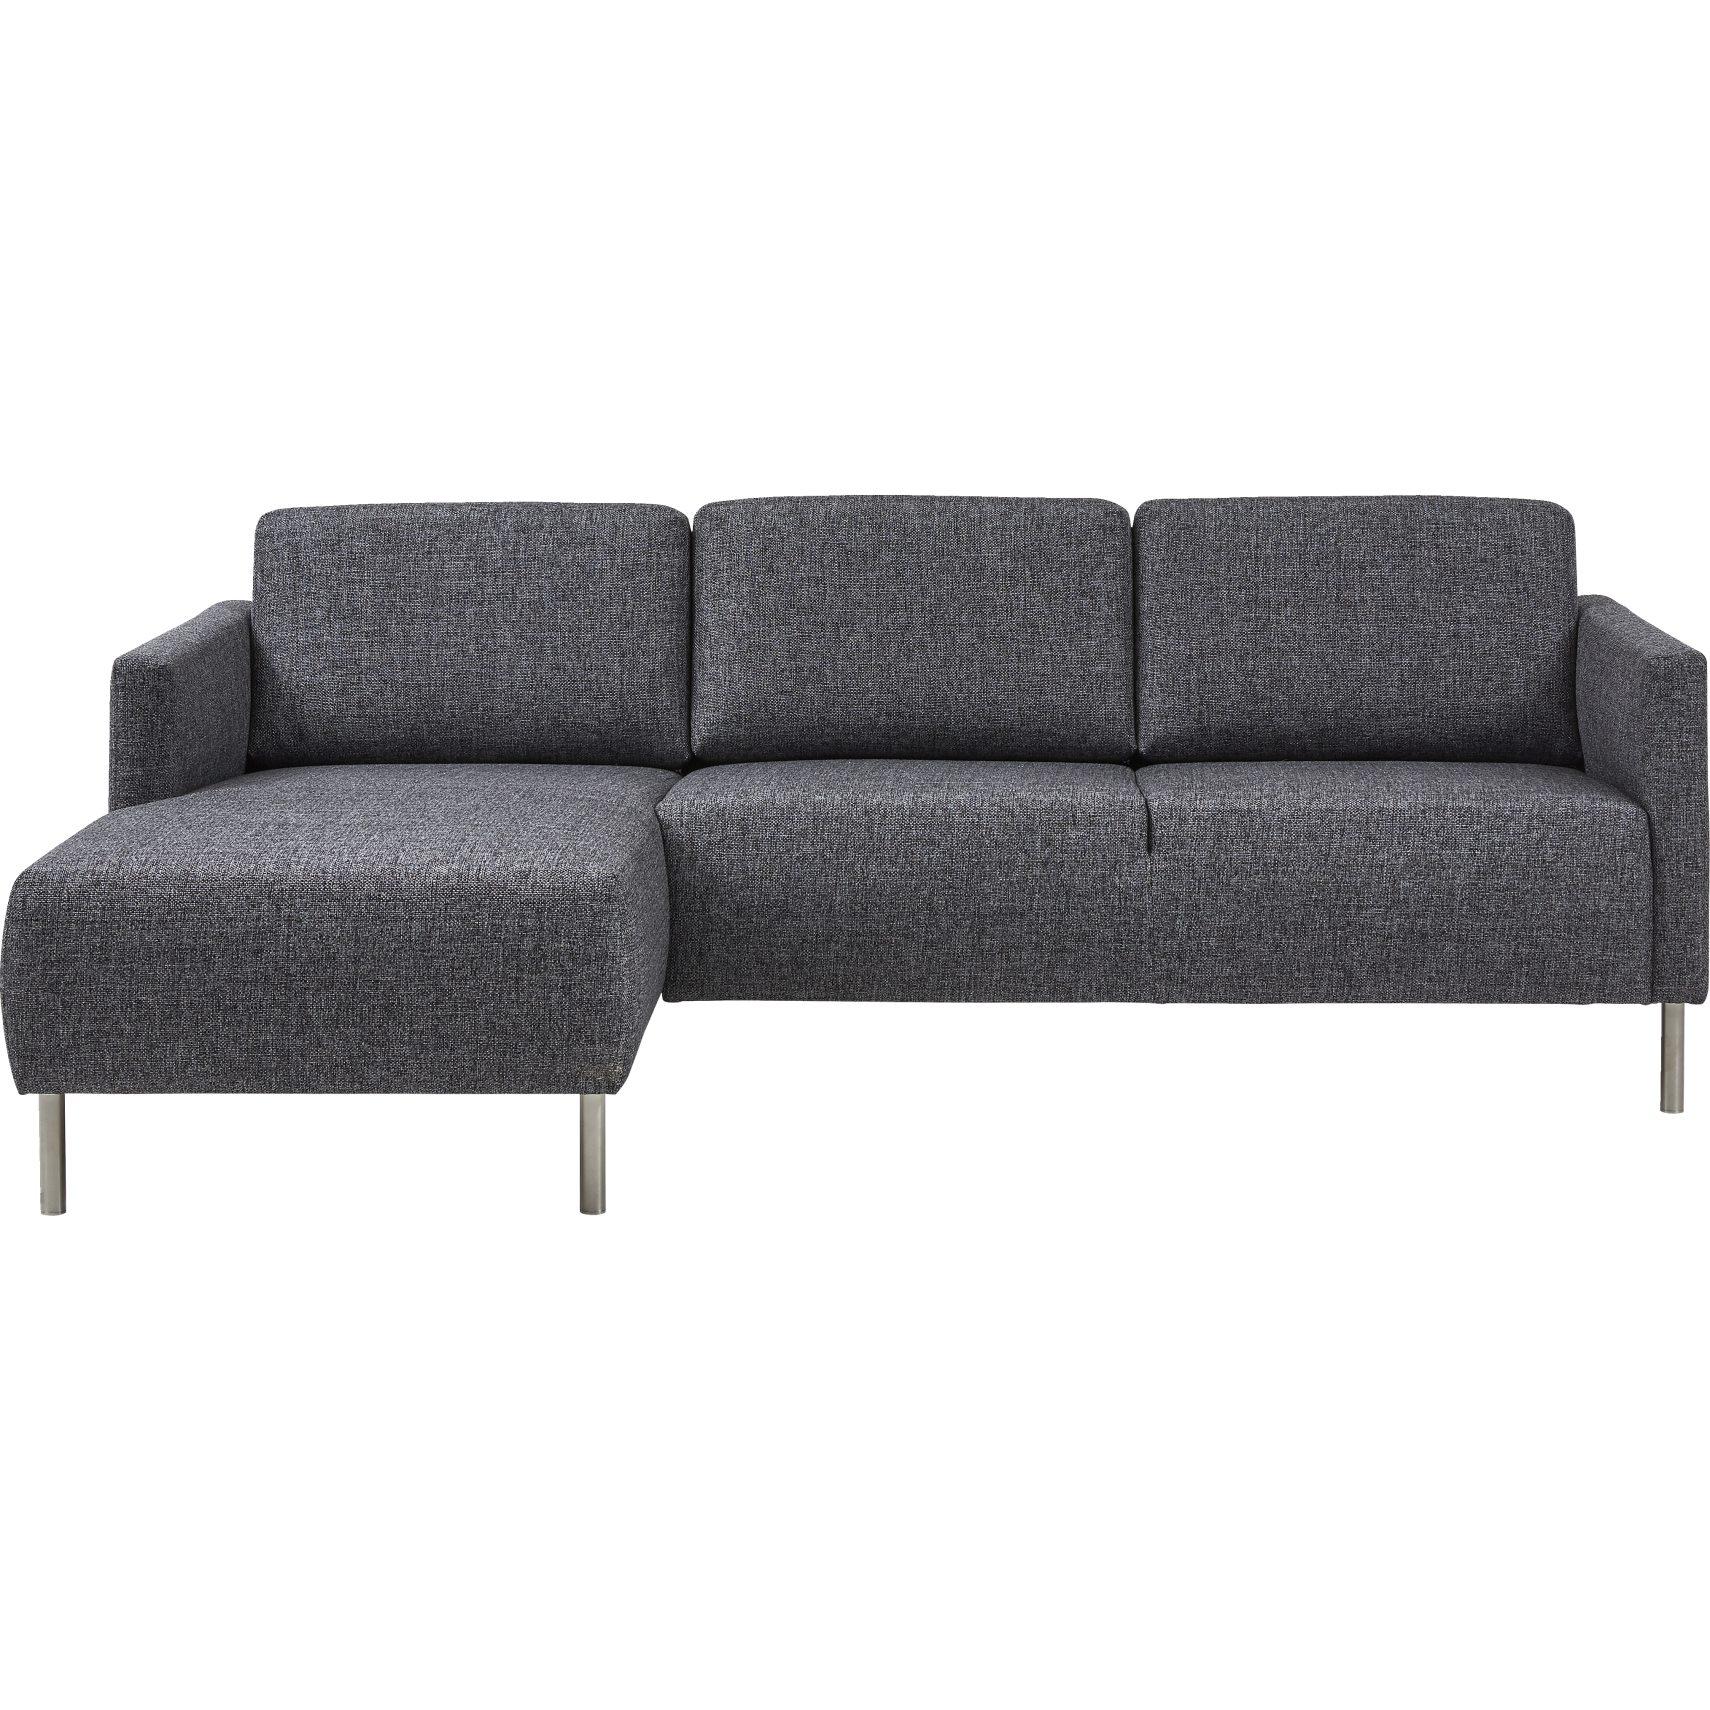 Flavio Sofa med chaiselong